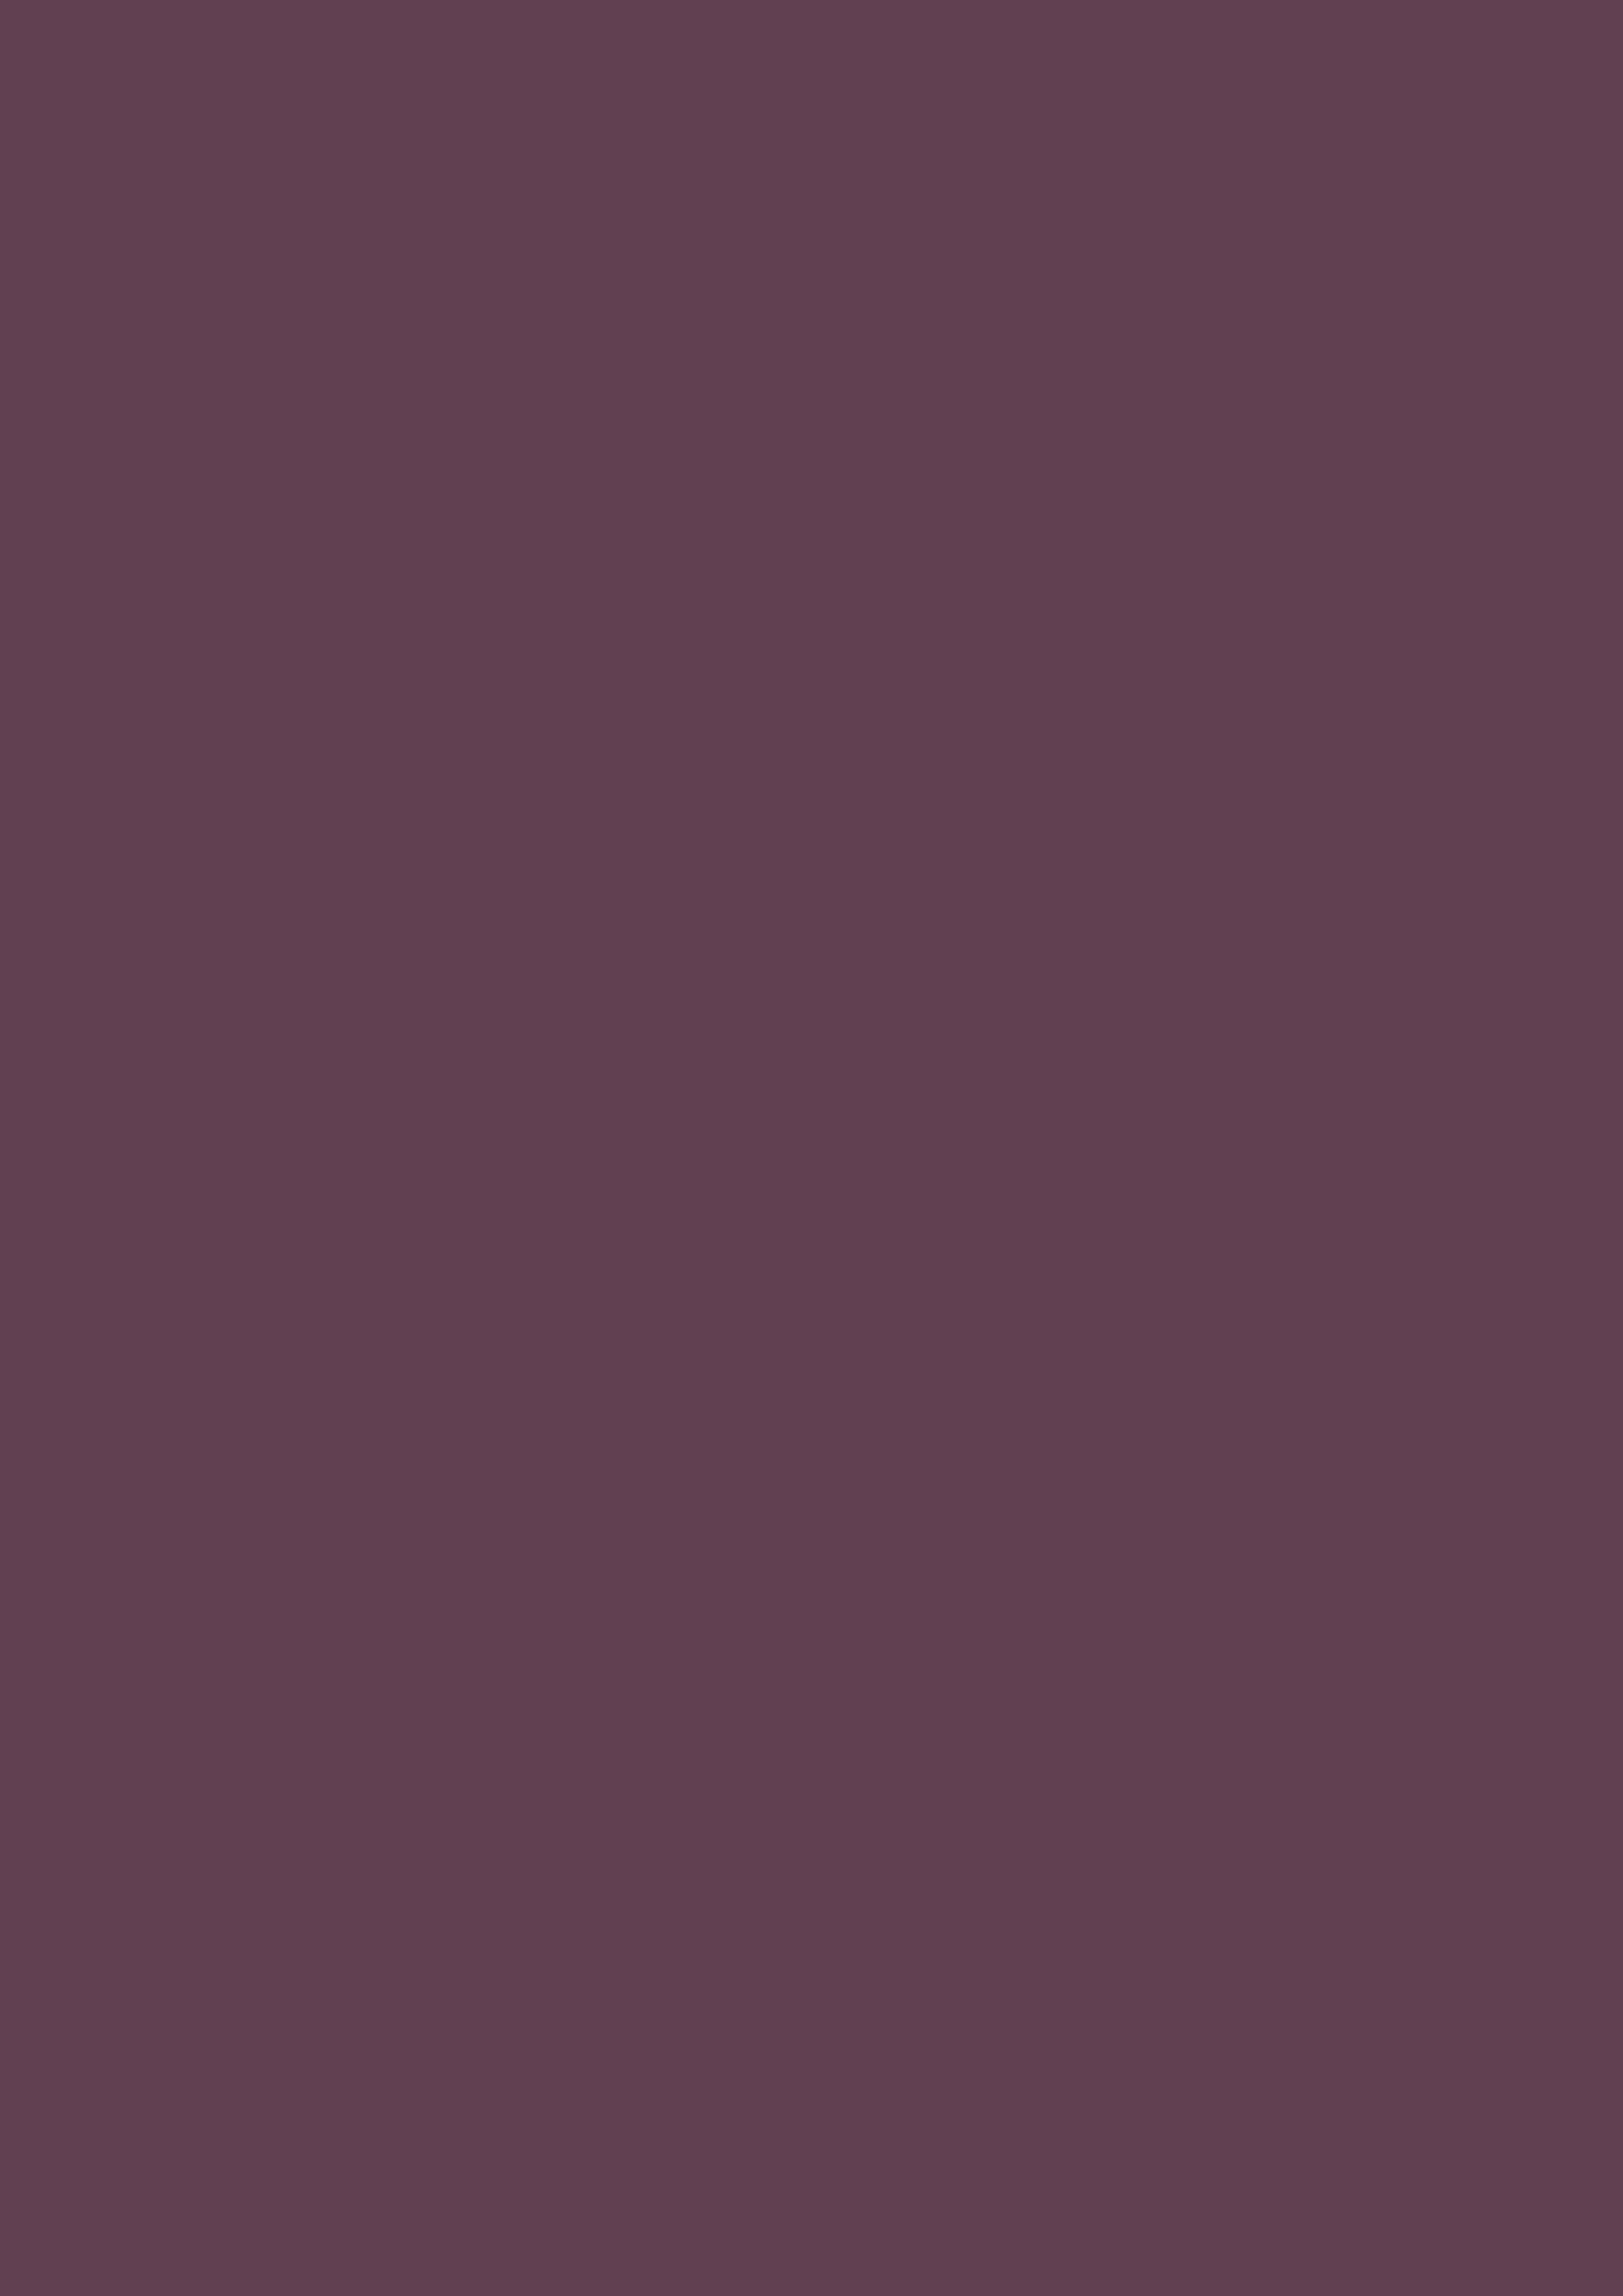 2480x3508 Eggplant Solid Color Background